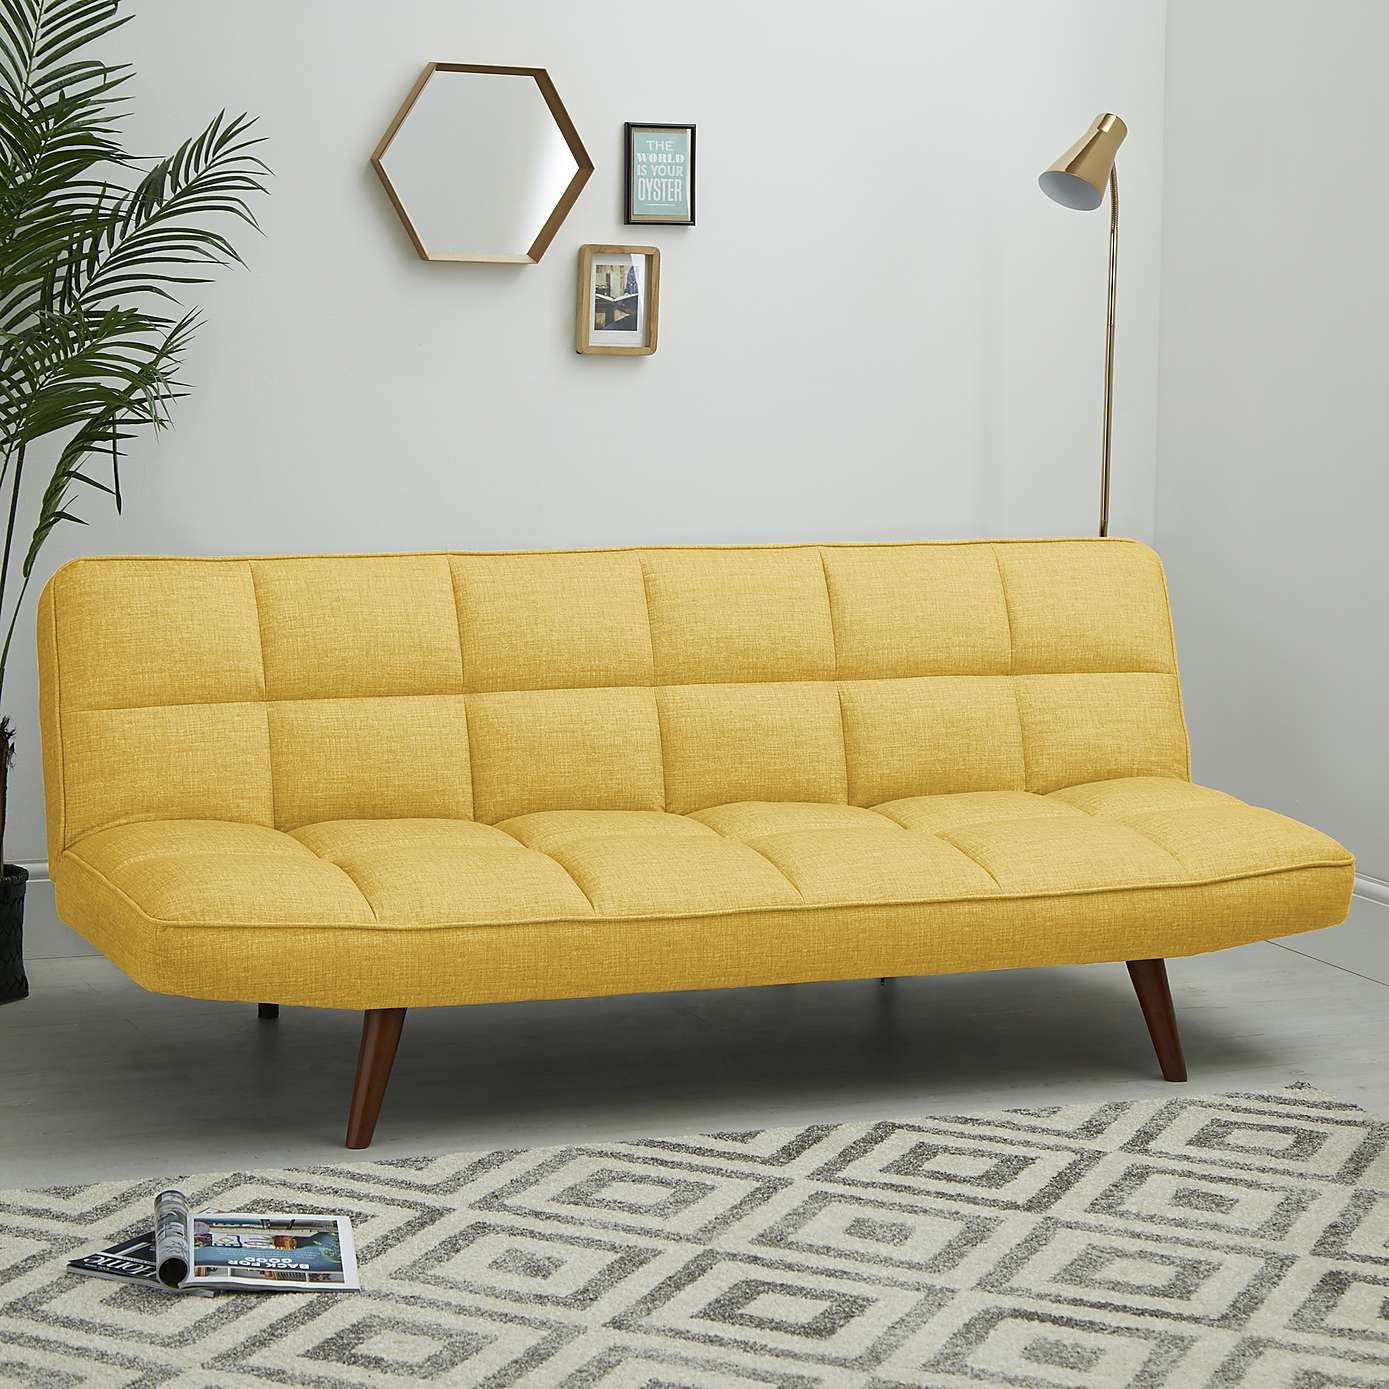 Magnificent Xander Colour Pop Clic Clac Sofa Bed Mustard In 2019 Pdpeps Interior Chair Design Pdpepsorg